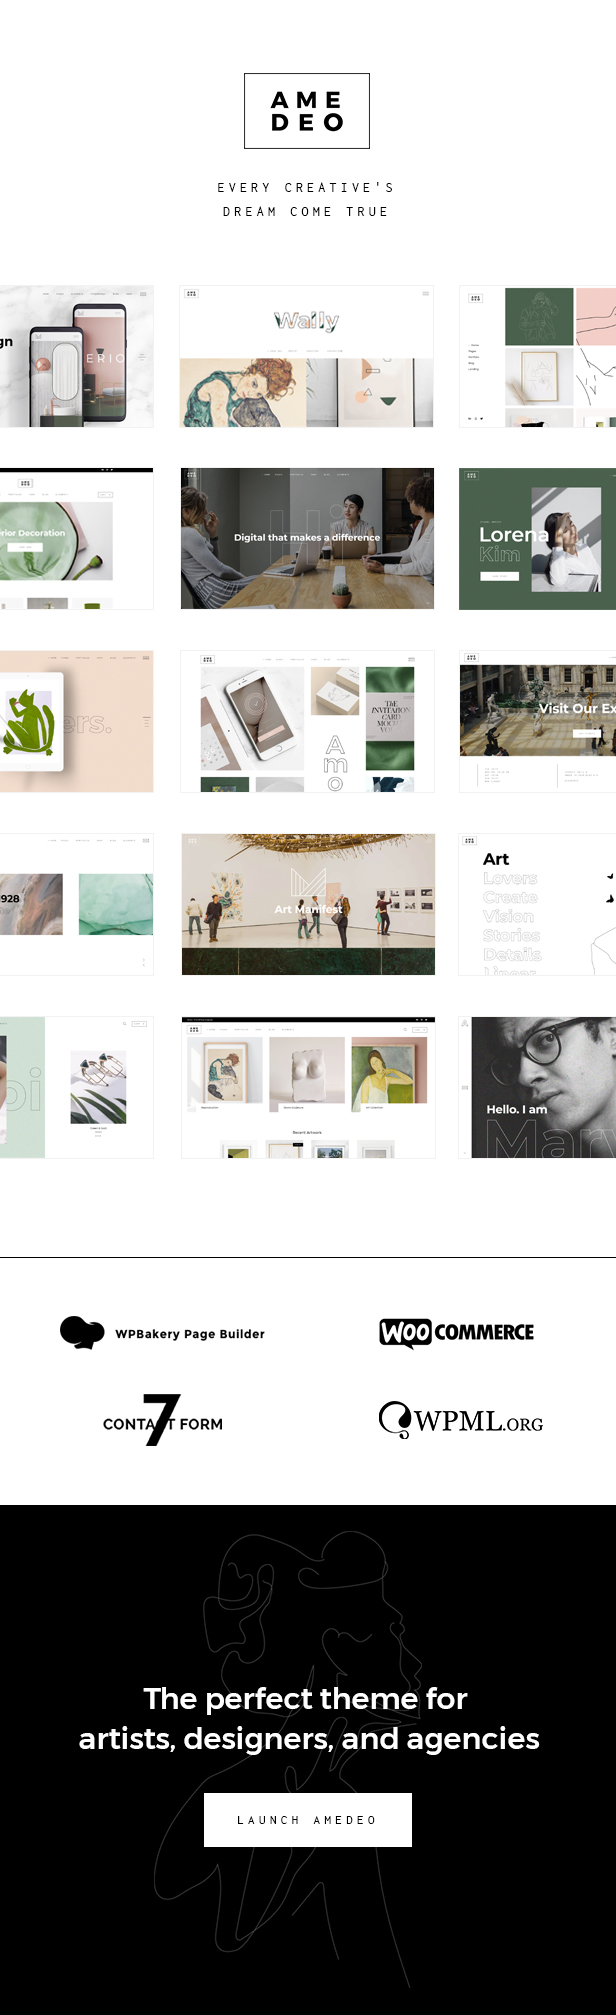 Amedeo - Multi-concept Artist and Creative Agency Theme - 1